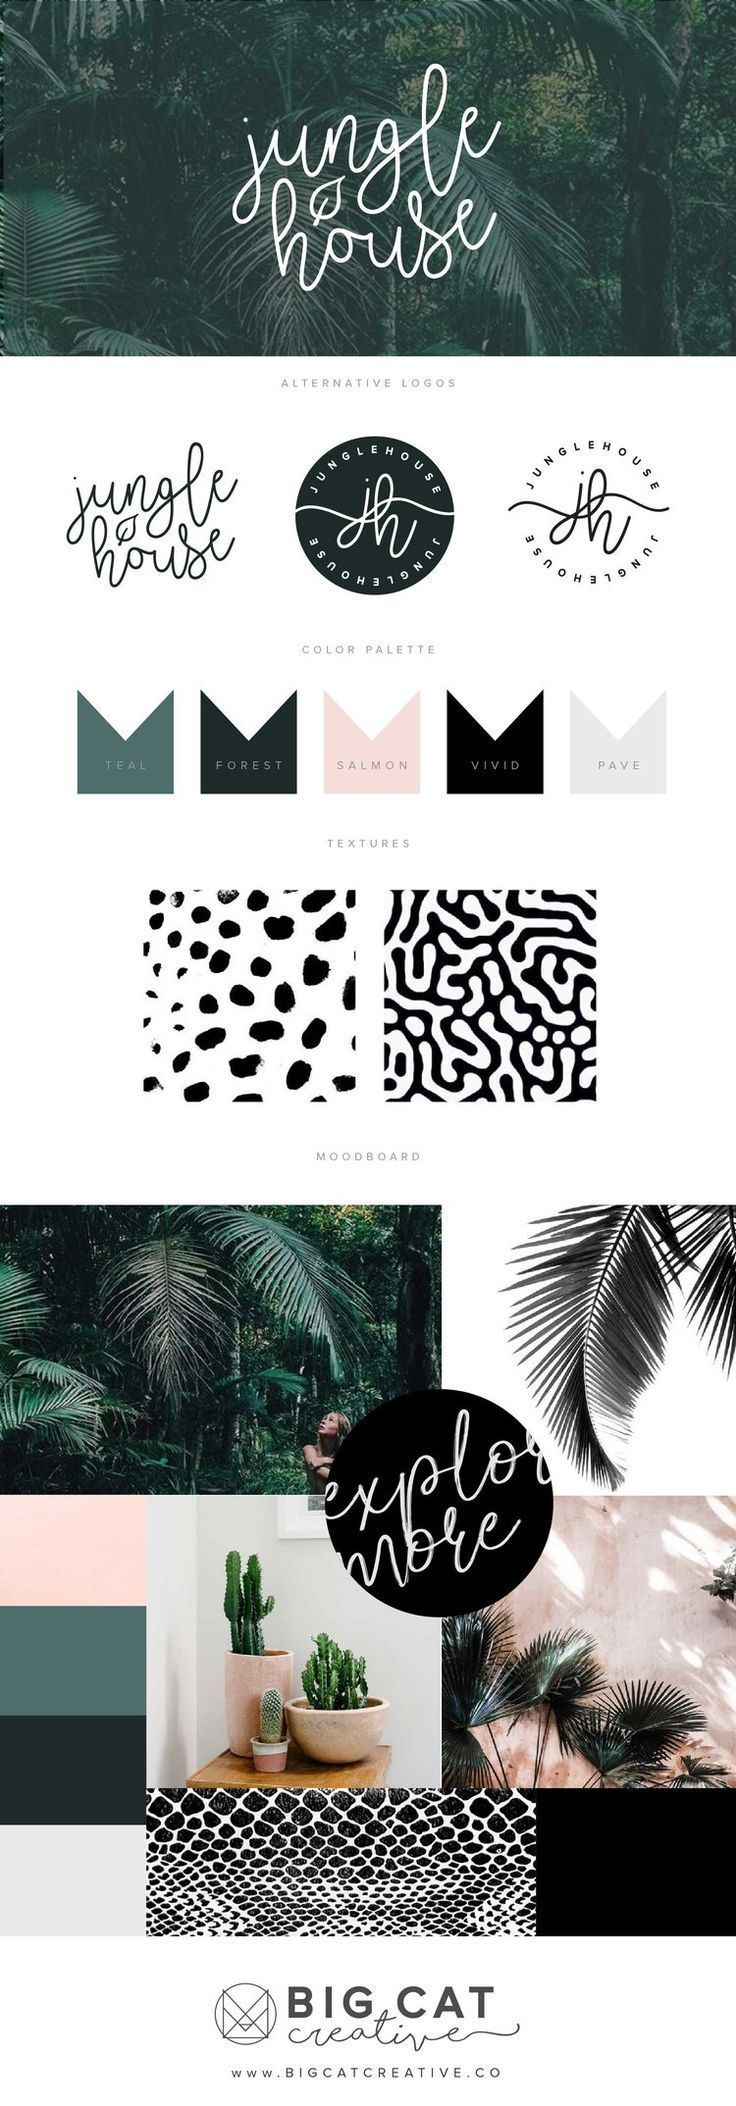 Branding Style Board for Jungle House | Get your own at bigcatcreative.com/ | Branding | Branding Style Board | Brand Board | Brand Design | Small Business | Creative Entrepreneur | Brand Design Inspiration | Logo Design Inspiration | Logo Design | Handwritten Logo | Color Palette | Moodboard | Script | Mood Board Inspiration | Brandboard | Green and Blush | Palm leaves #moodboards